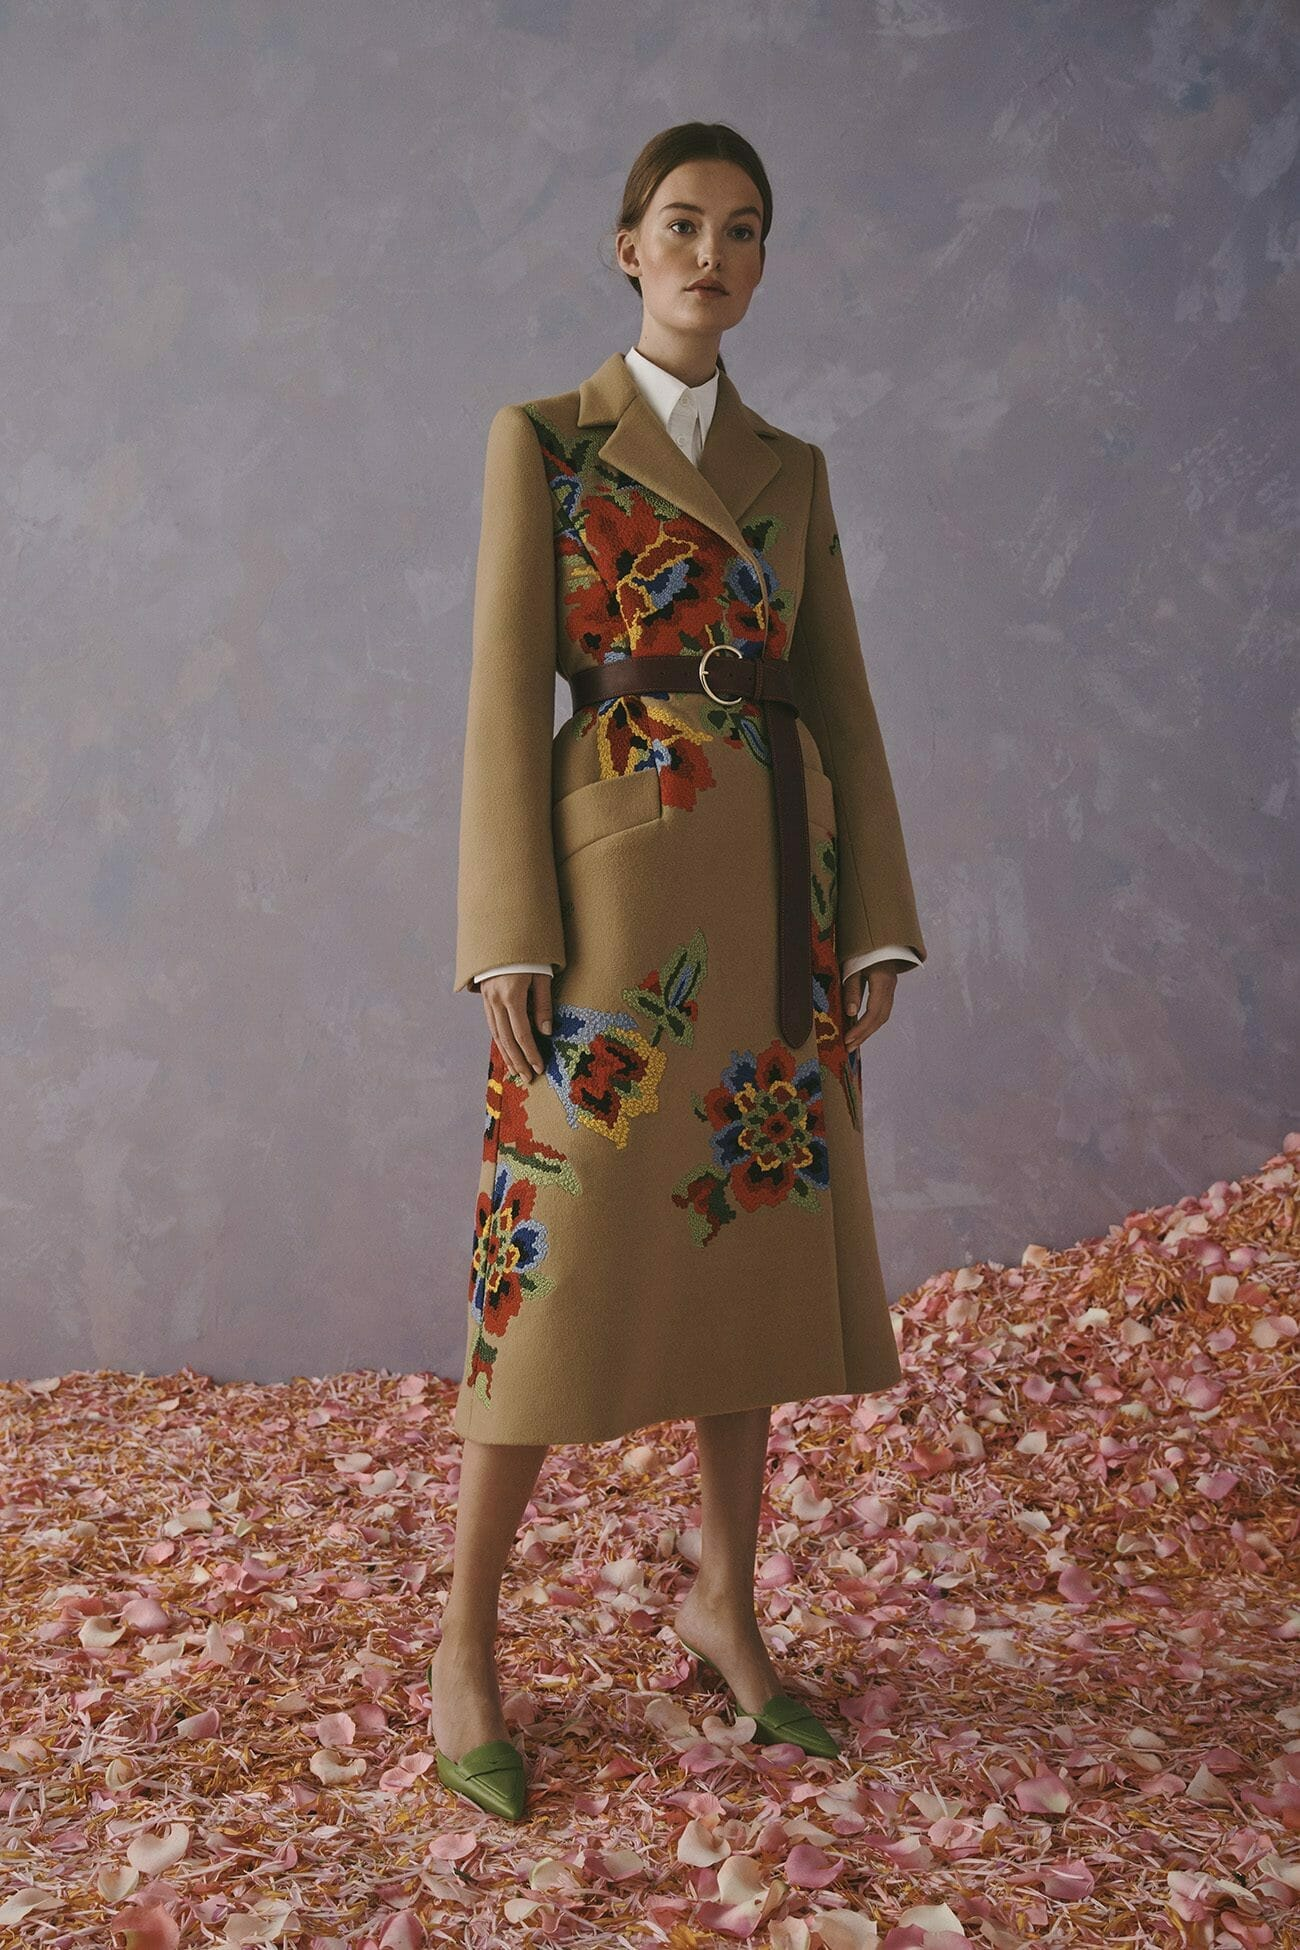 Carolina Herrera New York Resort 2020 Collection beige coat with flowers